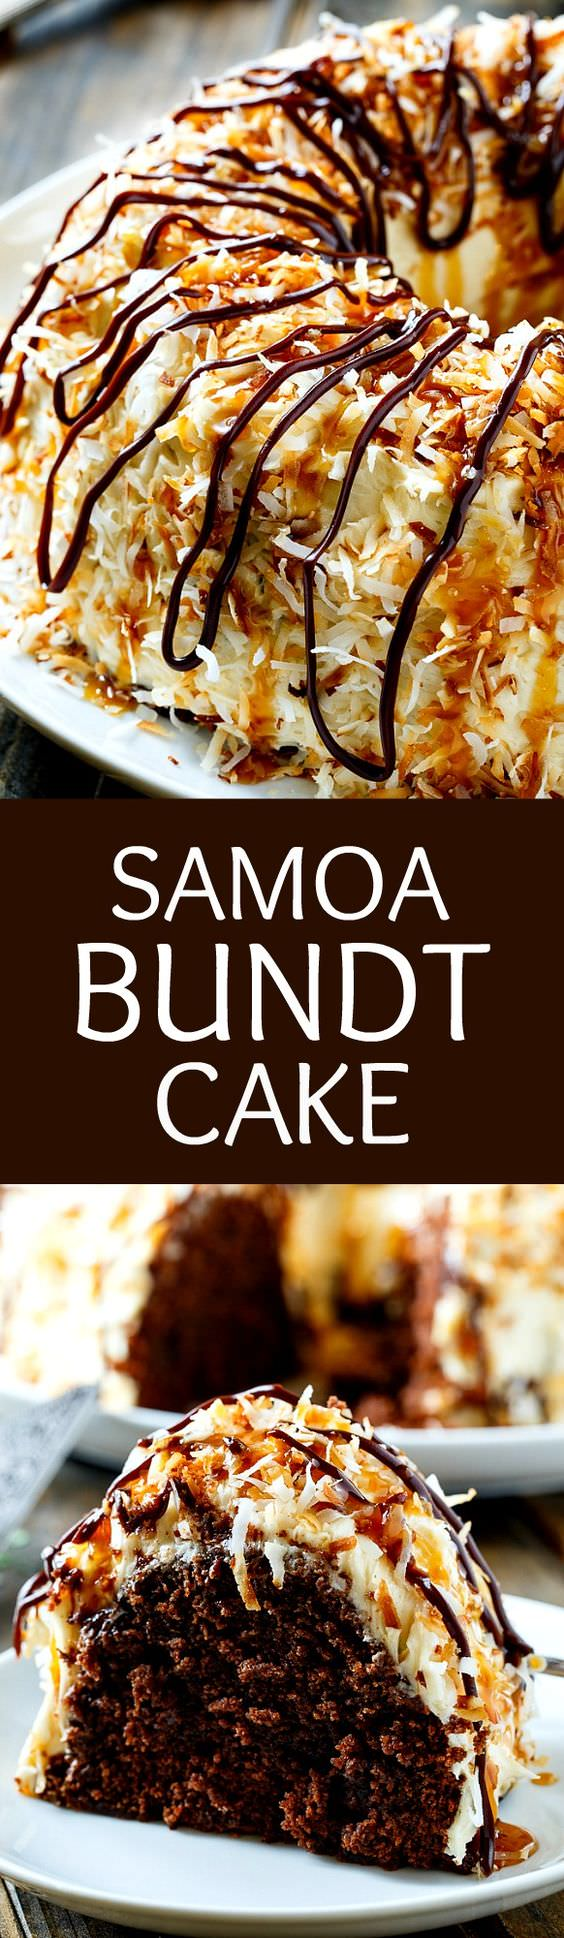 Samoa Cake tastes like the beloved girl scout cookie in bundt cake form with a tender cake full of chocolate flavor covered in a caramel frosting and lots of toasted coconuts.